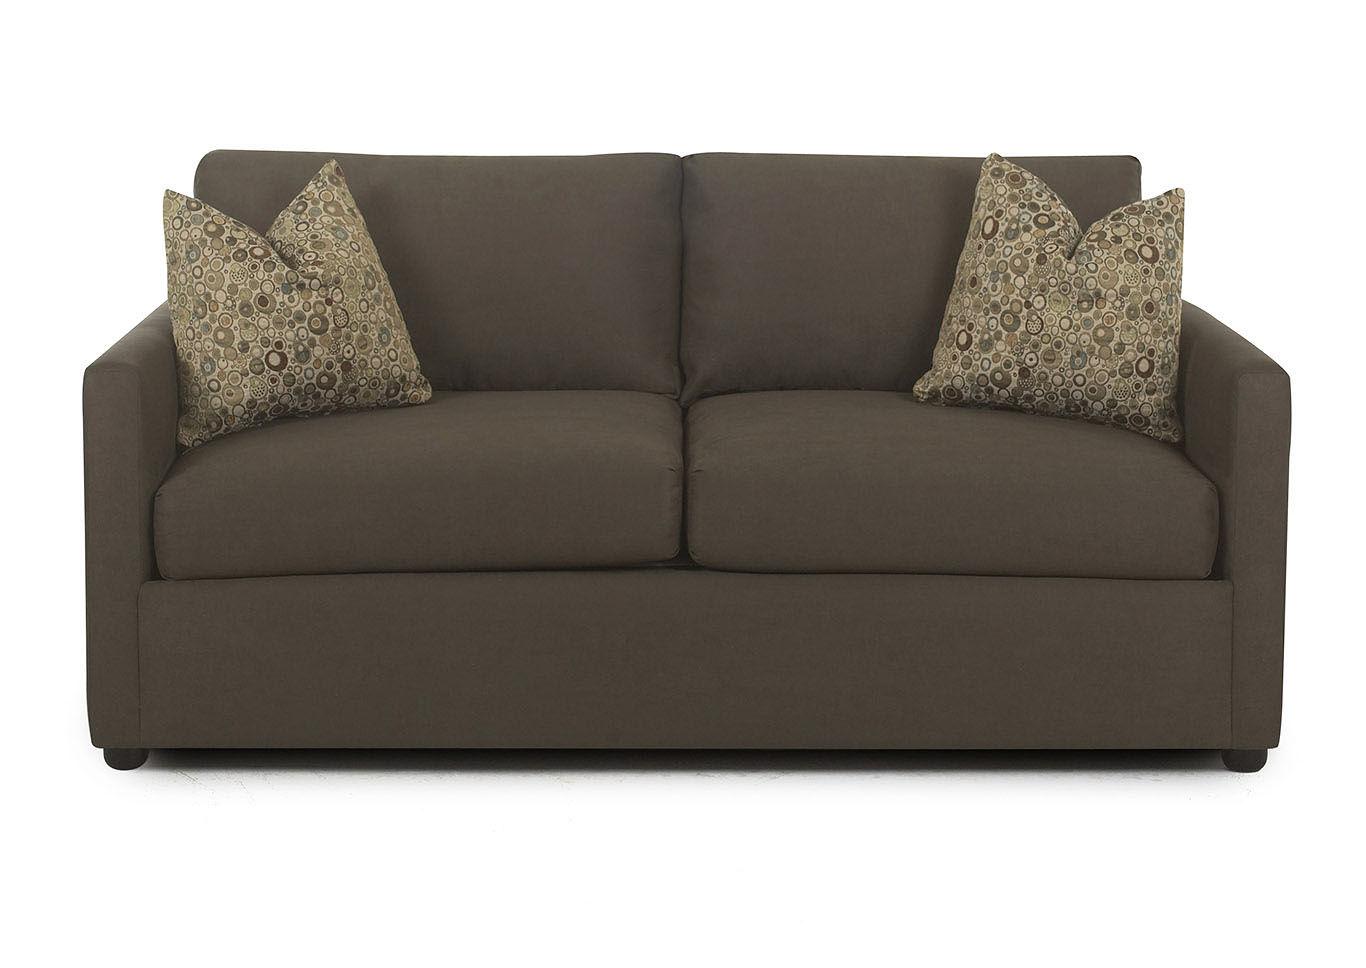 Jacobs Cocoa Stationary Fabric and Leather Sofa,Klaussner Home Furnishings